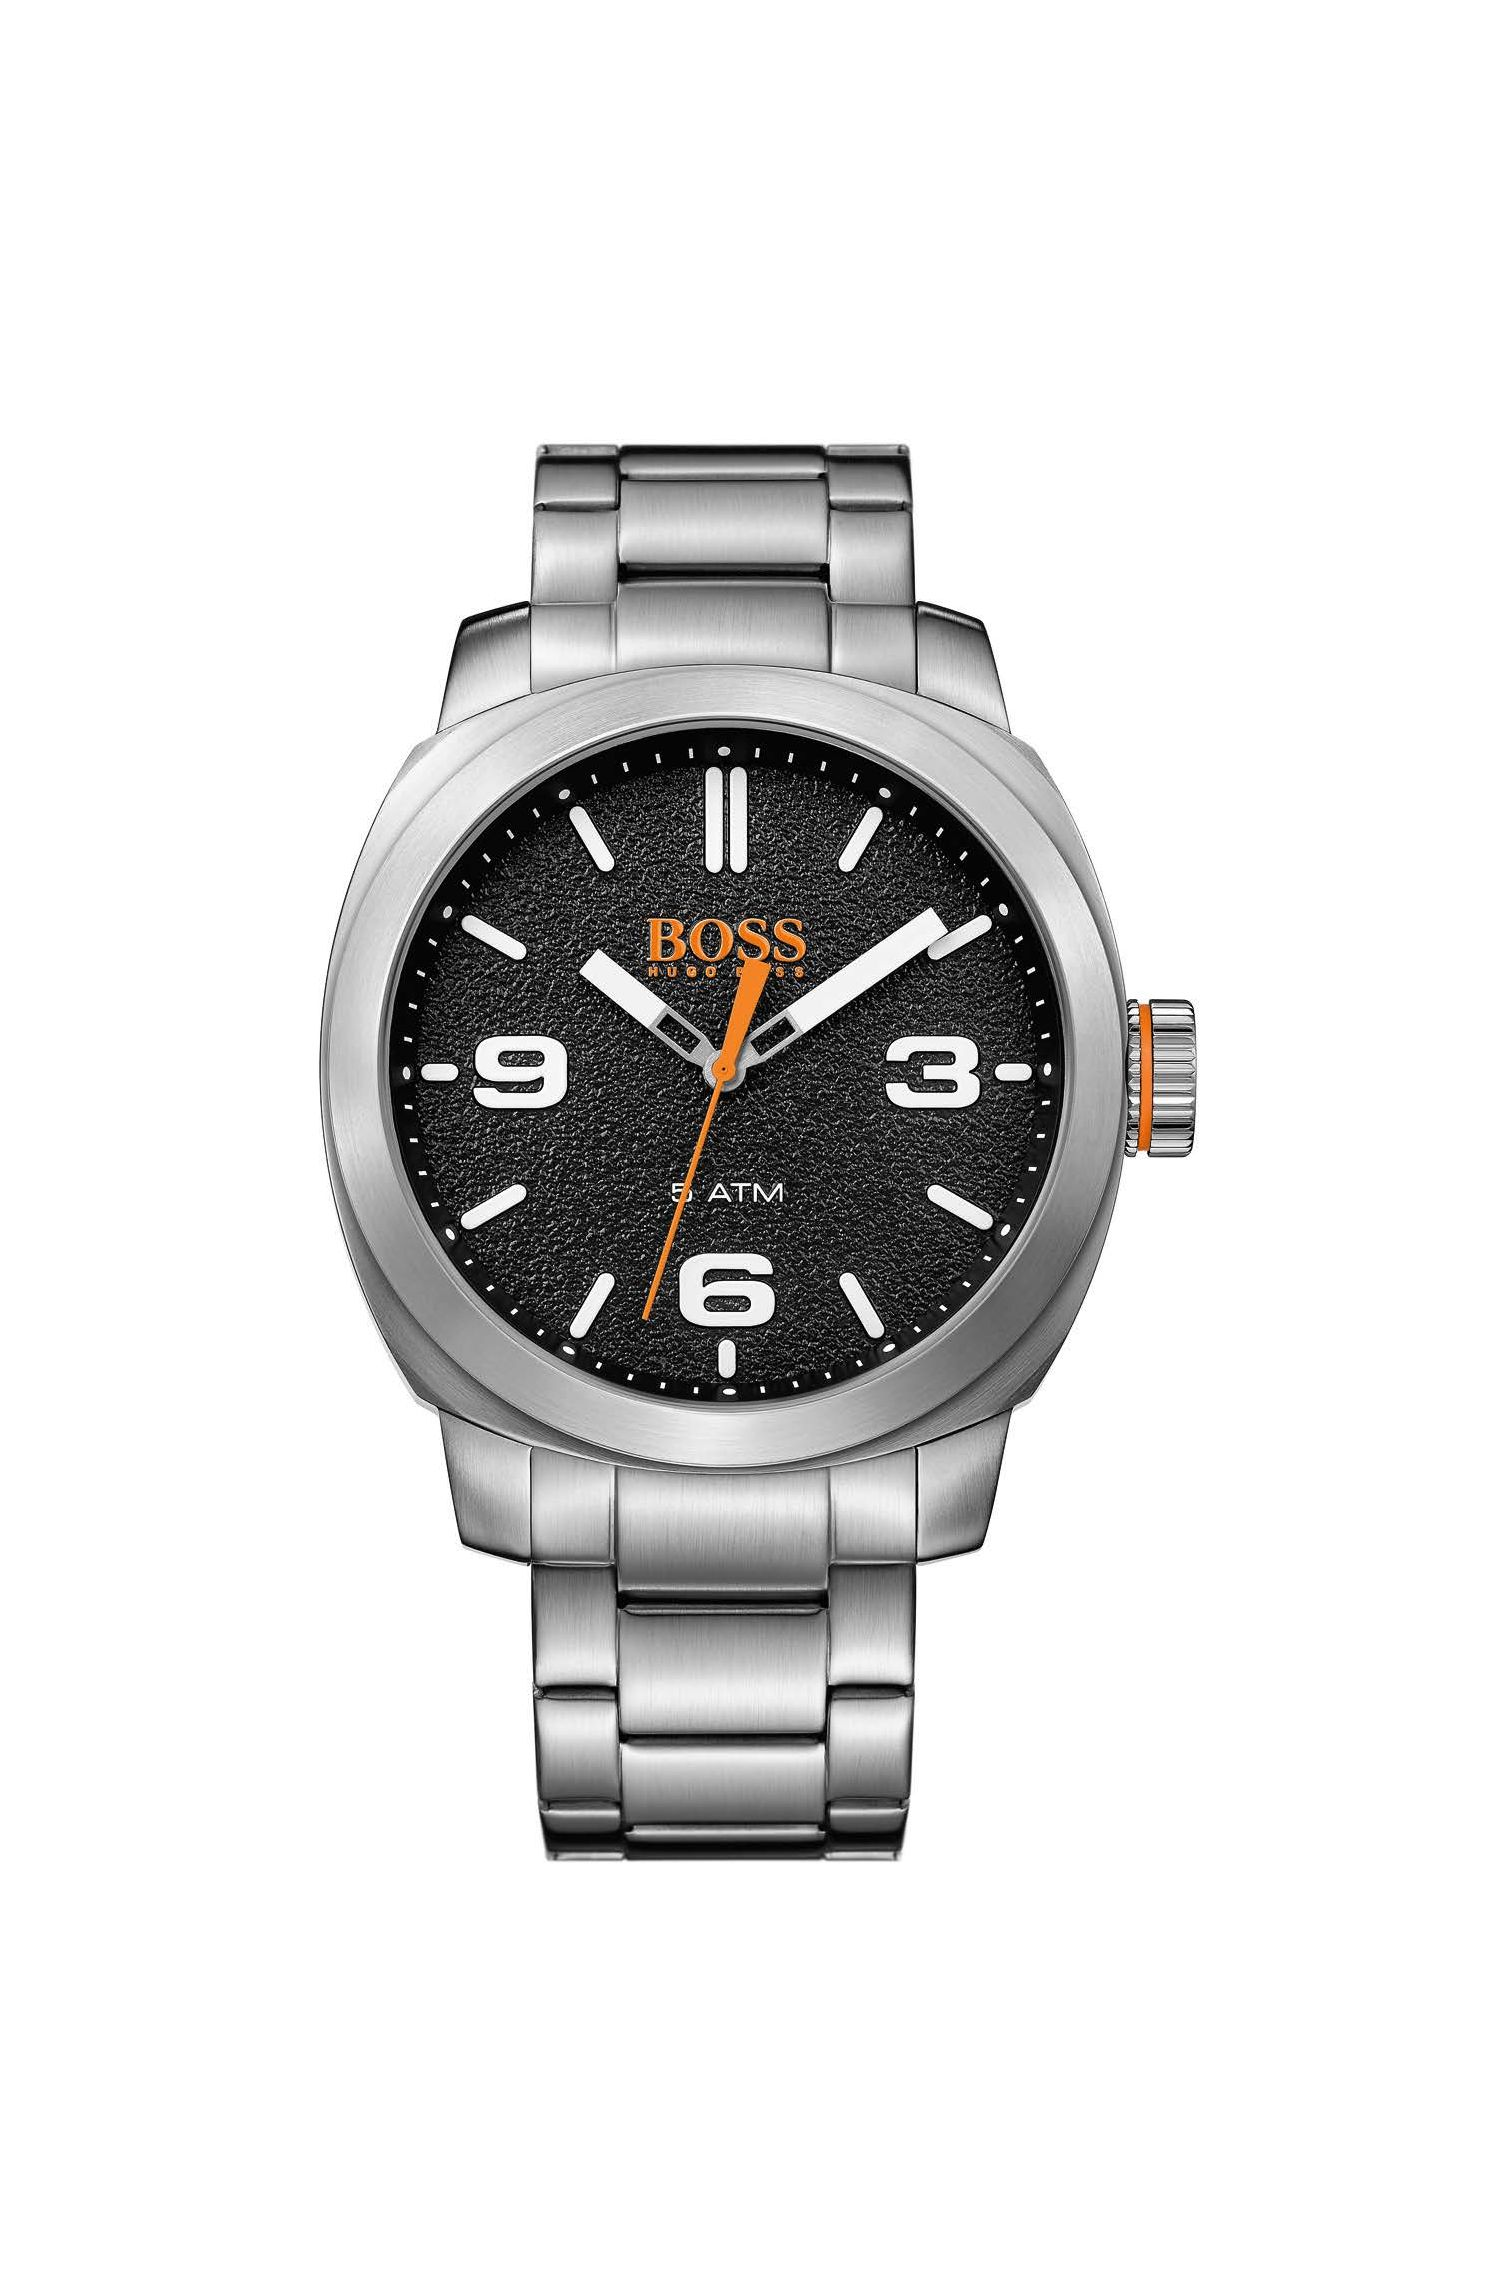 Stainless-steel watch with textured black dial